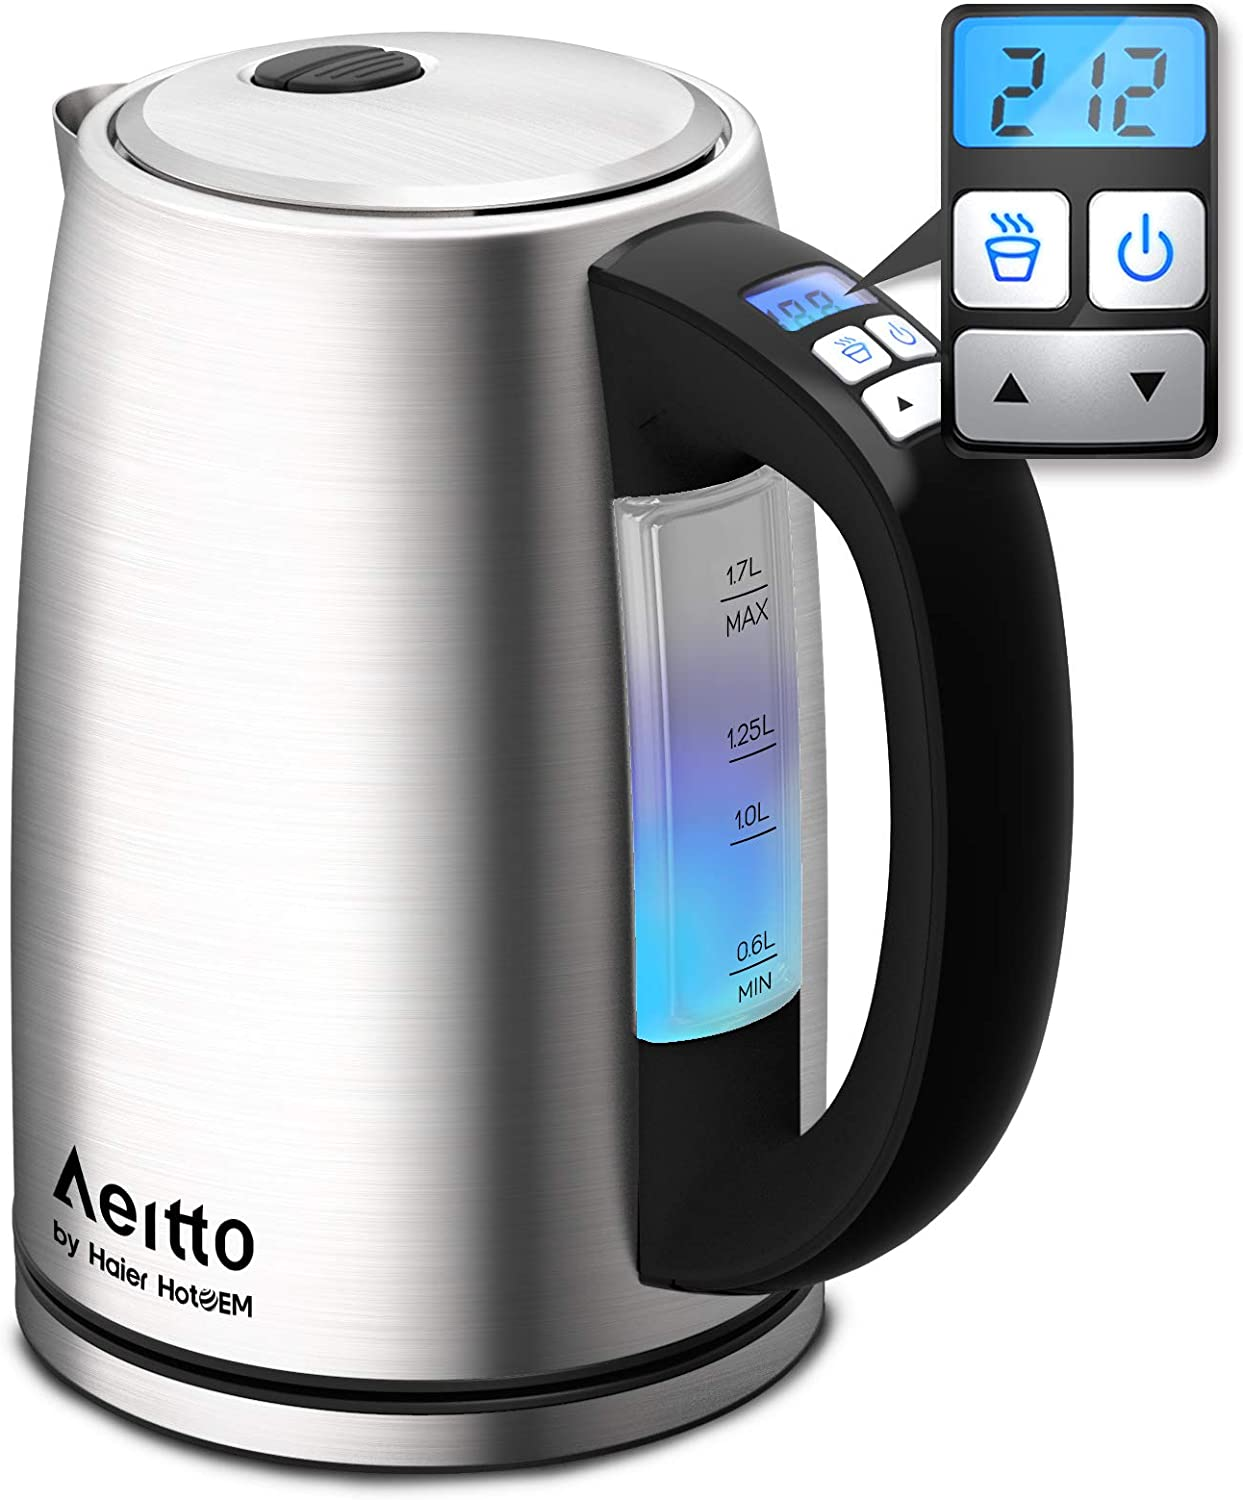 Electric Kettle, Stainless Steel Variable Temperature Control Water Kettle, Cordless Tea Heater BPA-Free Fast Boiling Keep Warm, Boil-Dry Protection, 6 Color Lights, 1500W 1.7L, Aeitto